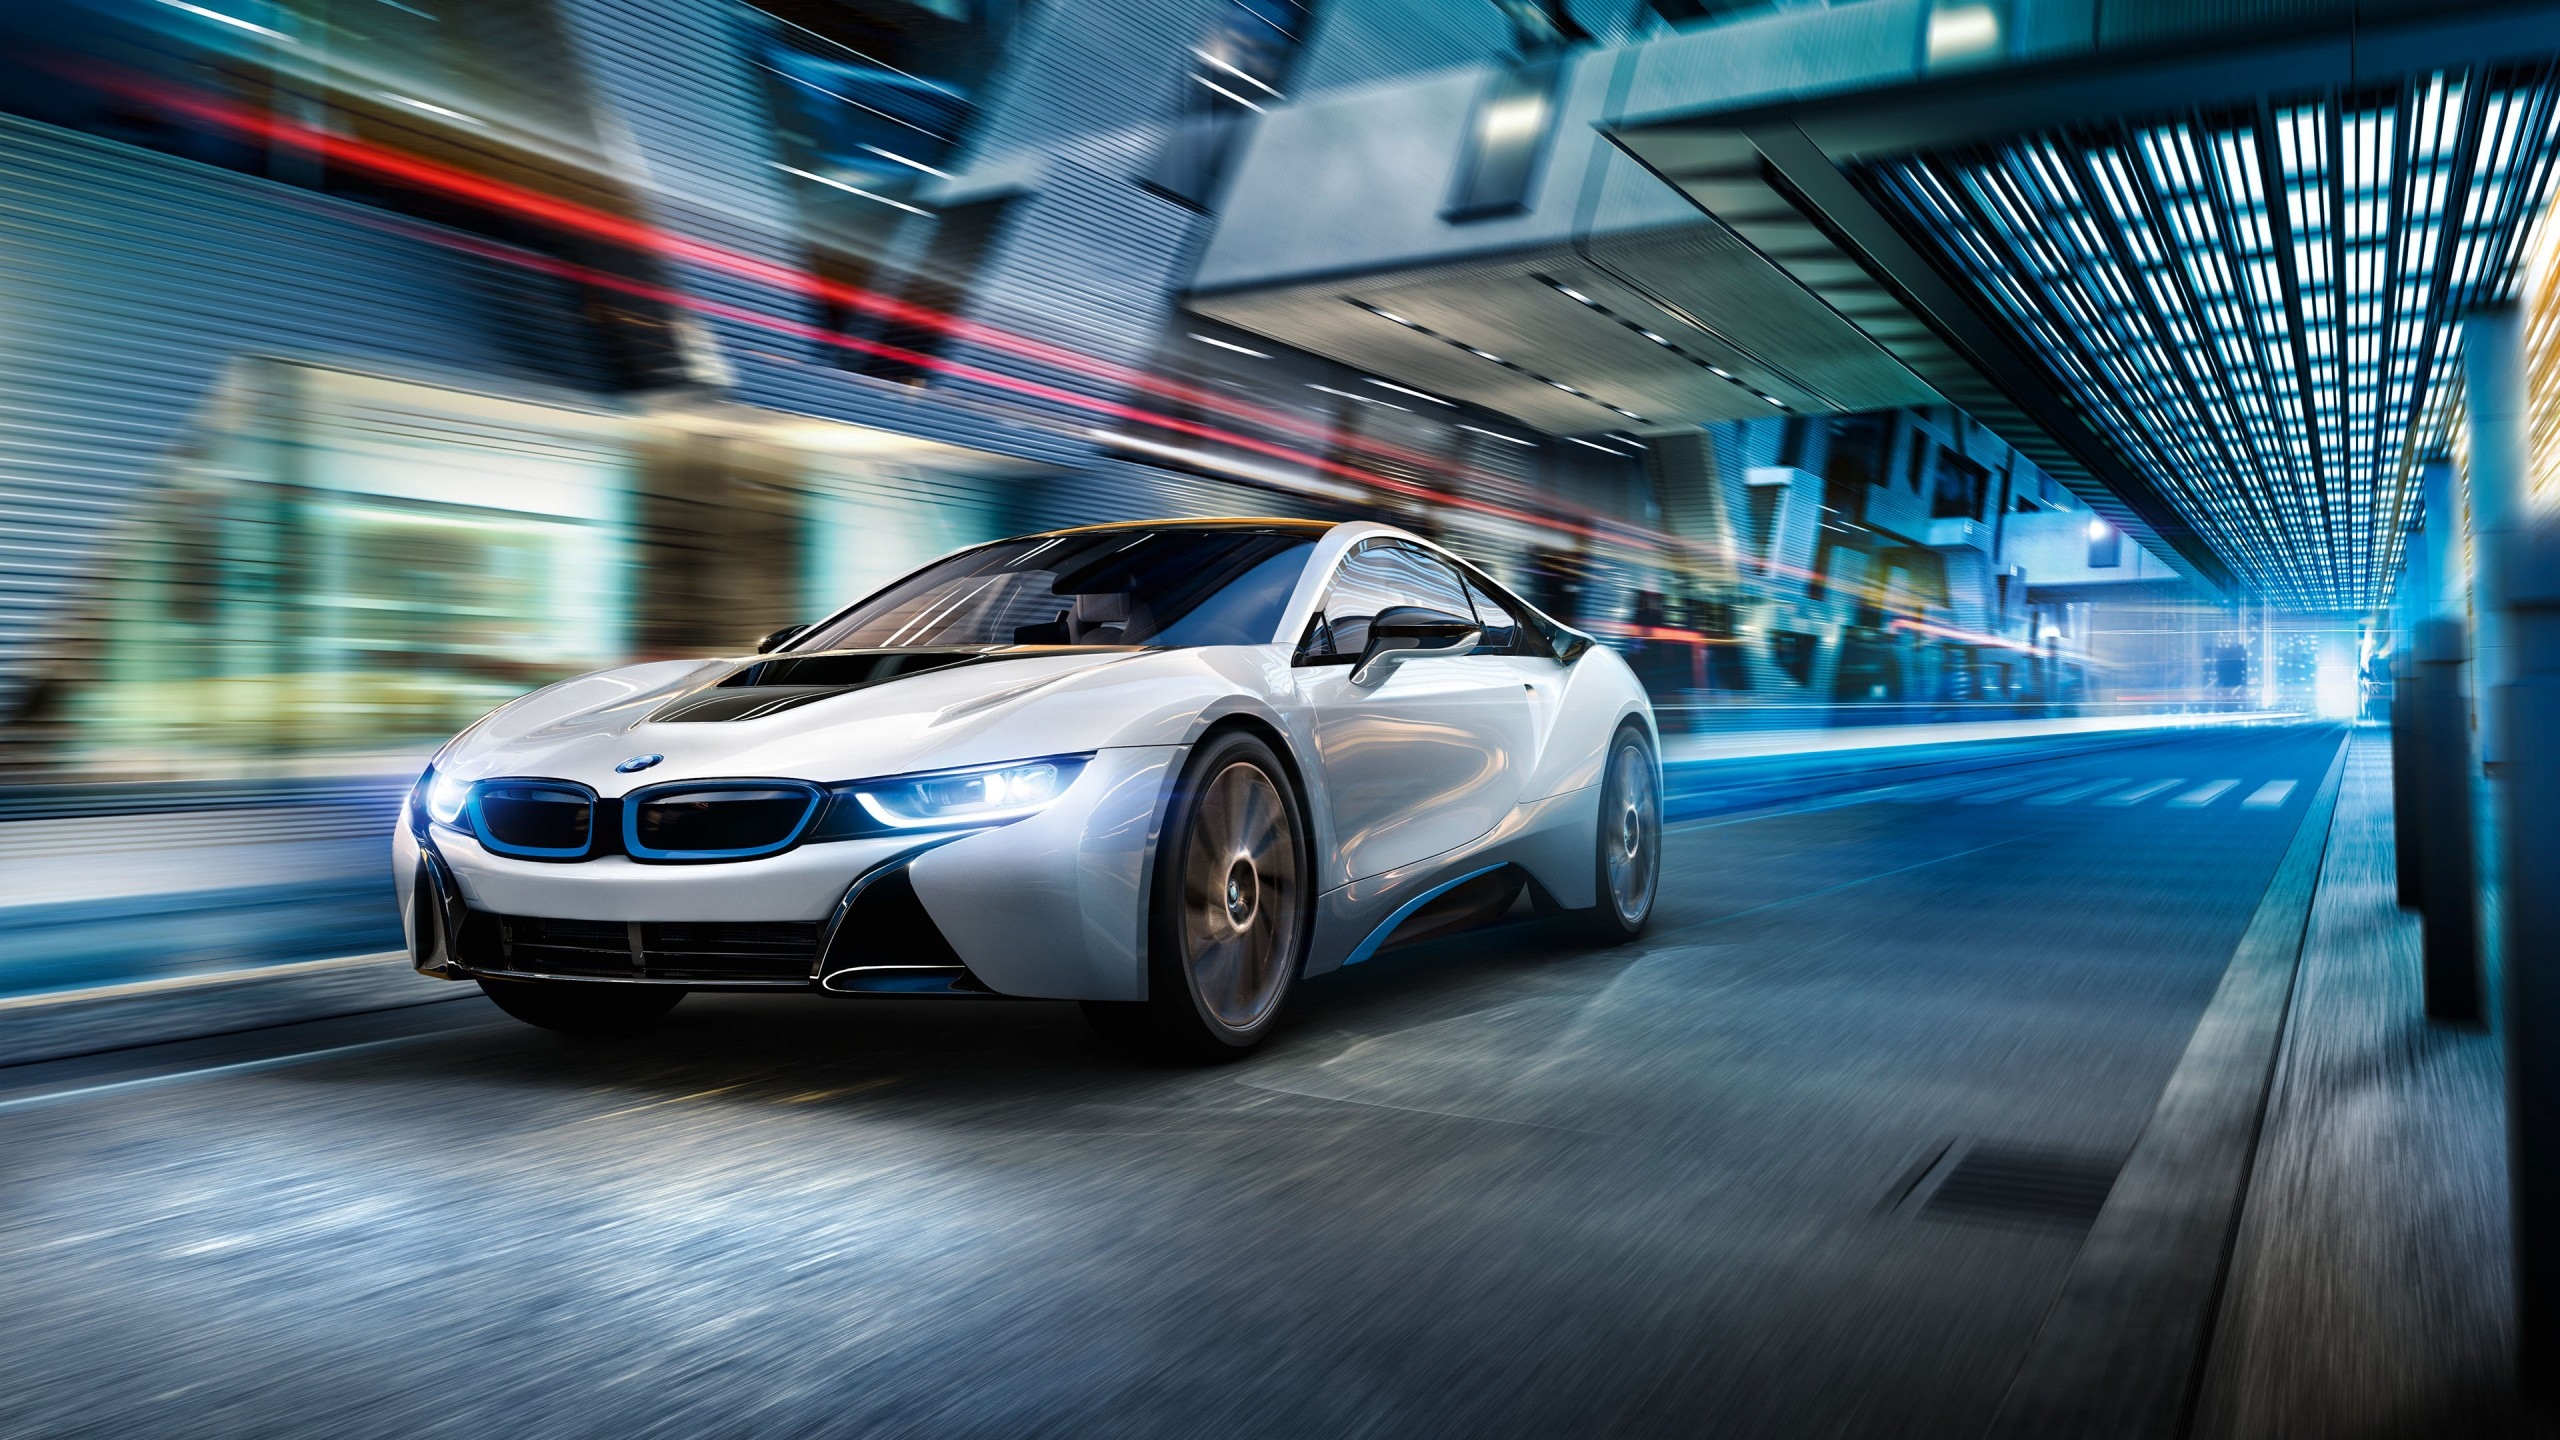 BMW i8 Day White 4K Wallpaper | HD Car Wallpapers | ID #8101